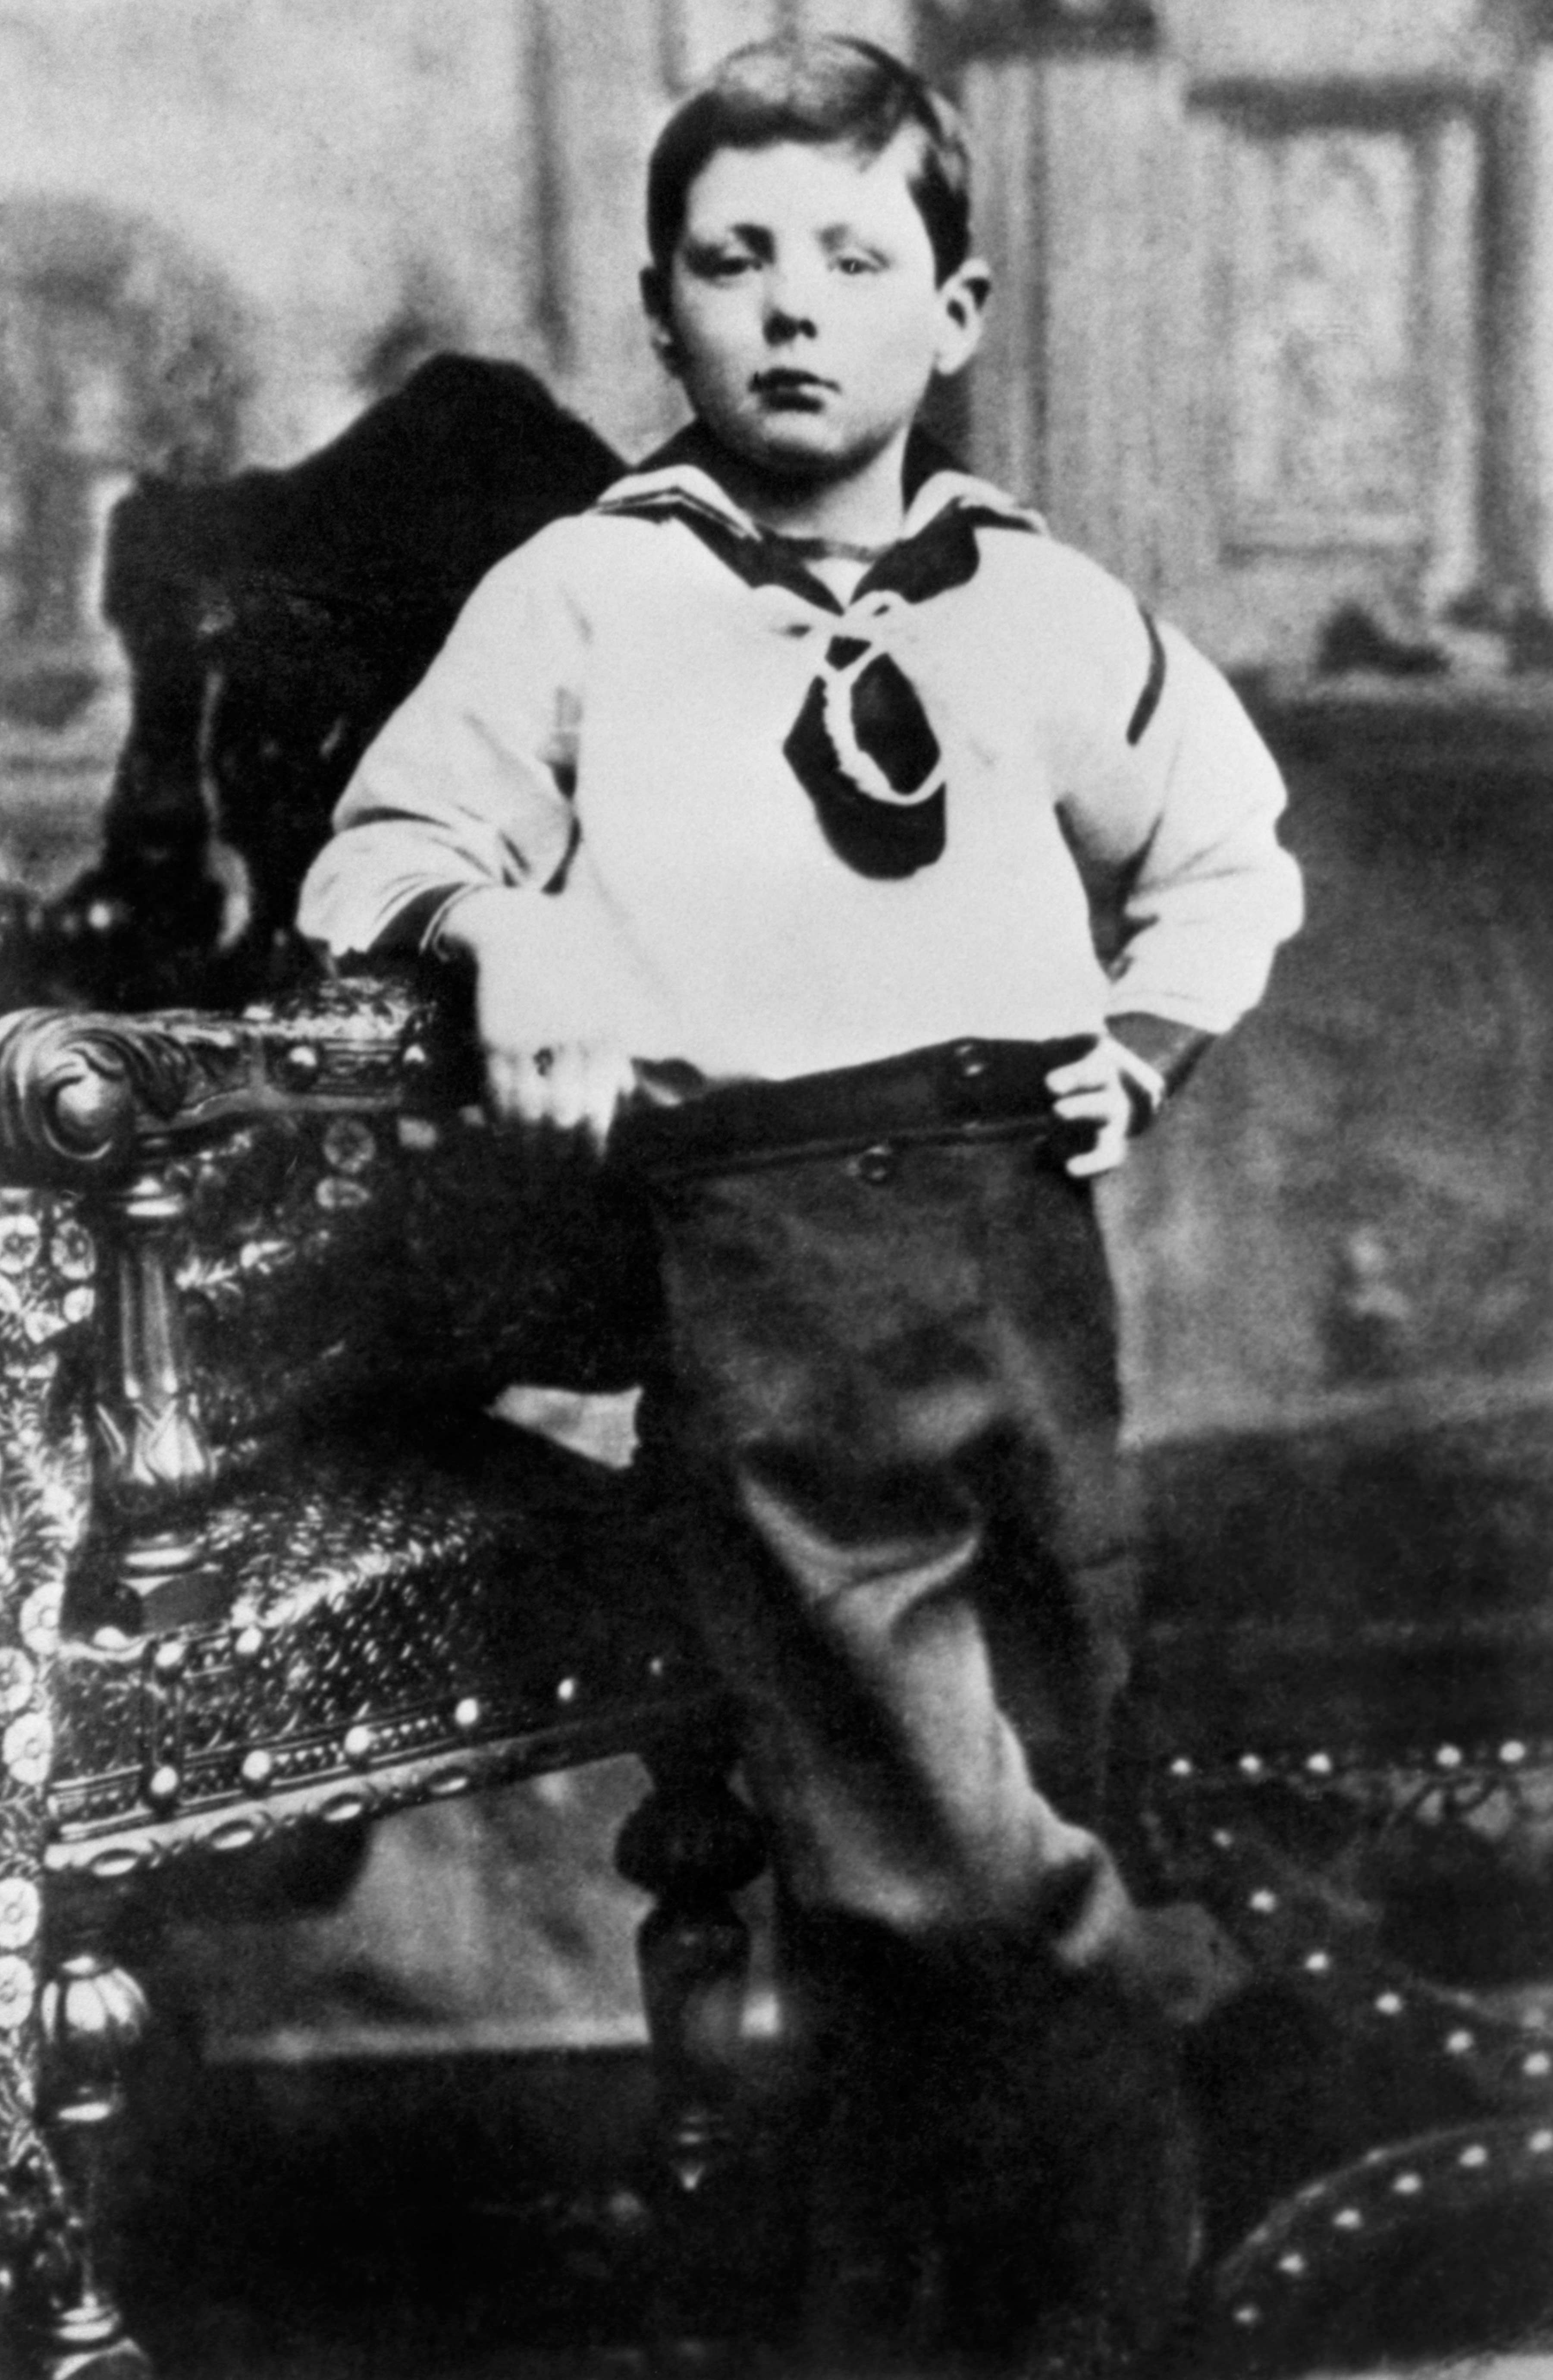 Winston Churchill as a seven year old in a seaman's suit.